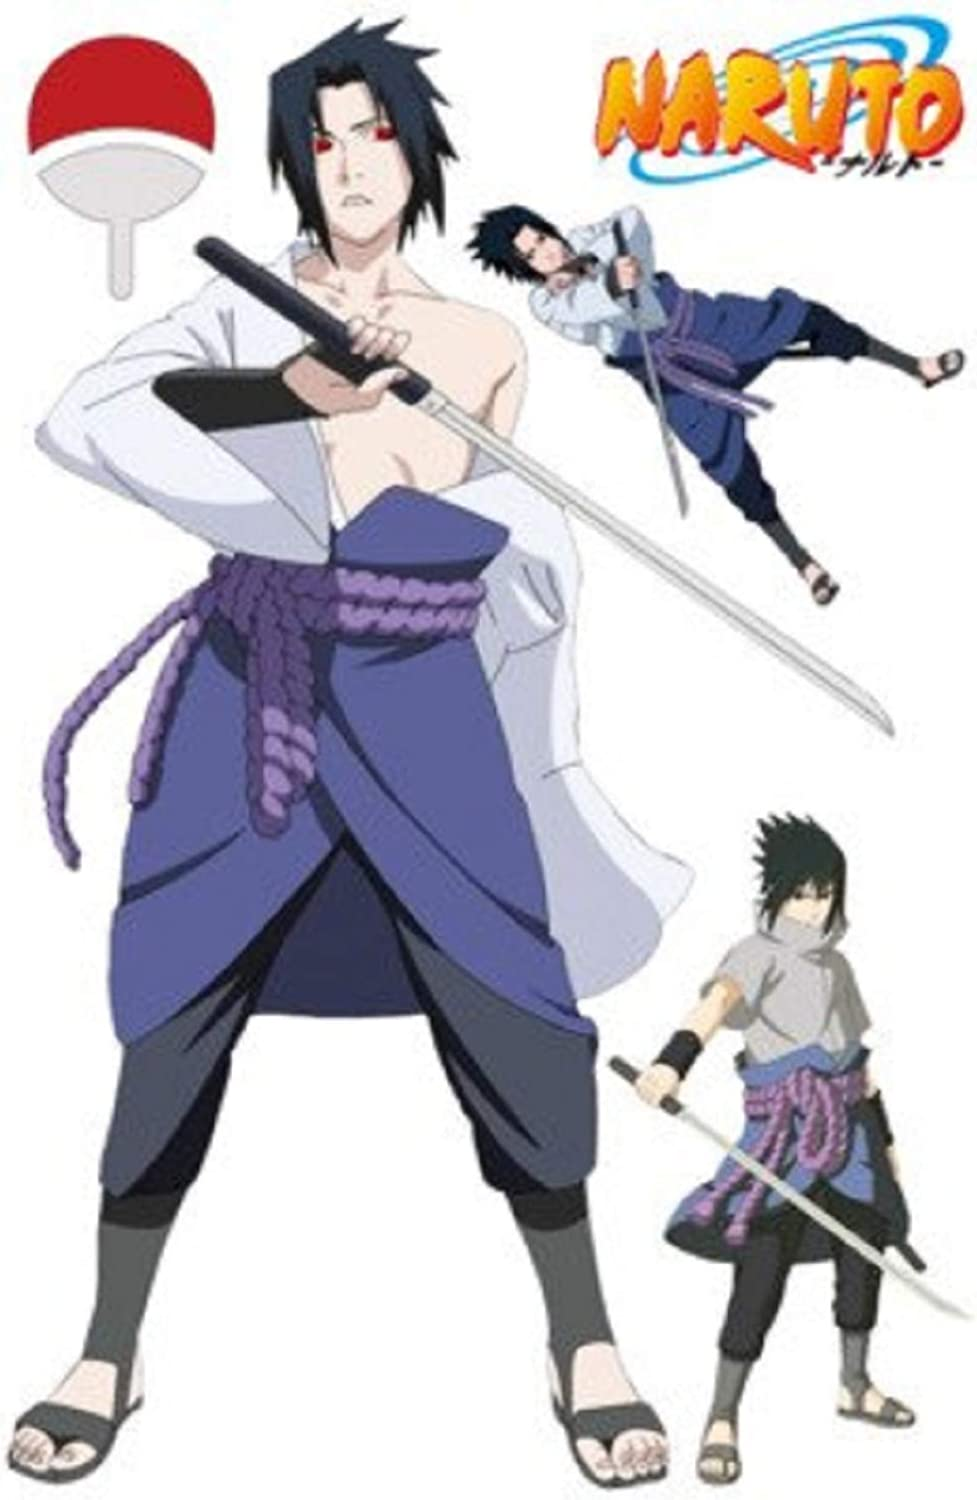 Sticker Naruto Anime 3d Visual Effect Wallpaper Naruto Sasuke Hatake Kakashi Jiraiya Itachi Mode 8 Amazon Ca Home Kitchen